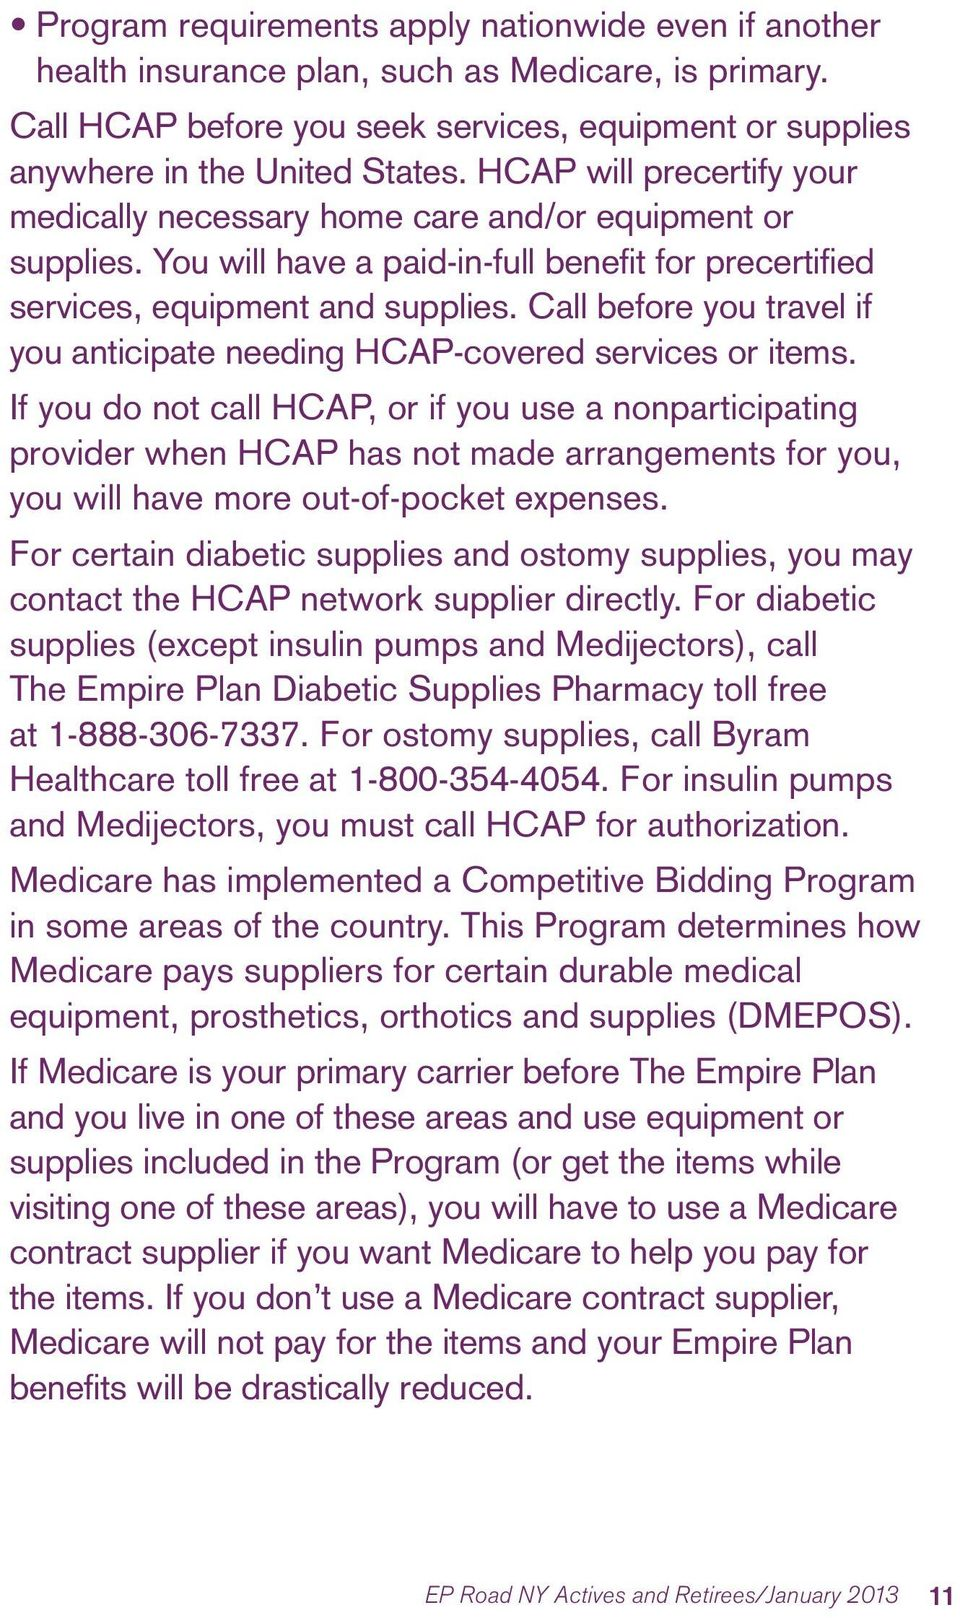 Call before you travel if you anticipate needing HCAP-covered services or items.